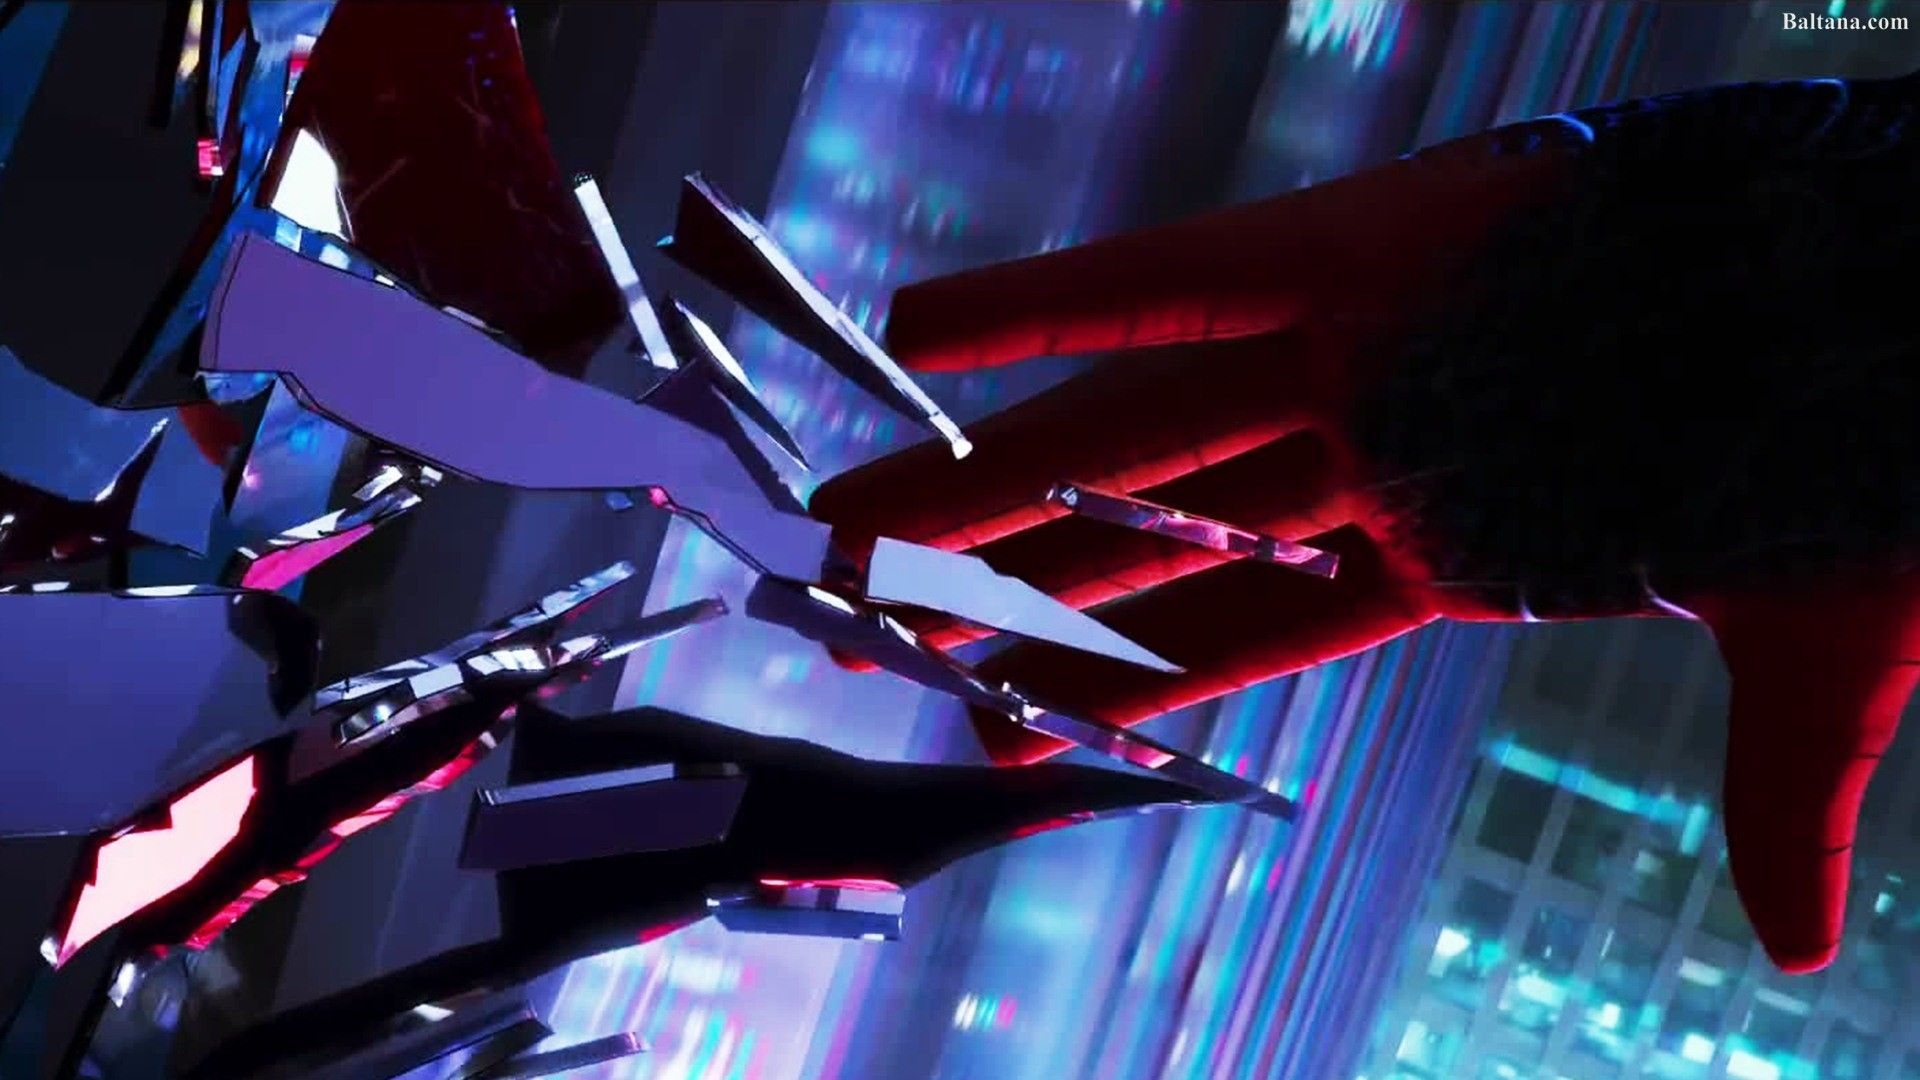 Spider Verse Wallpapers Top Free Spider Verse Backgrounds Wallpaperaccess